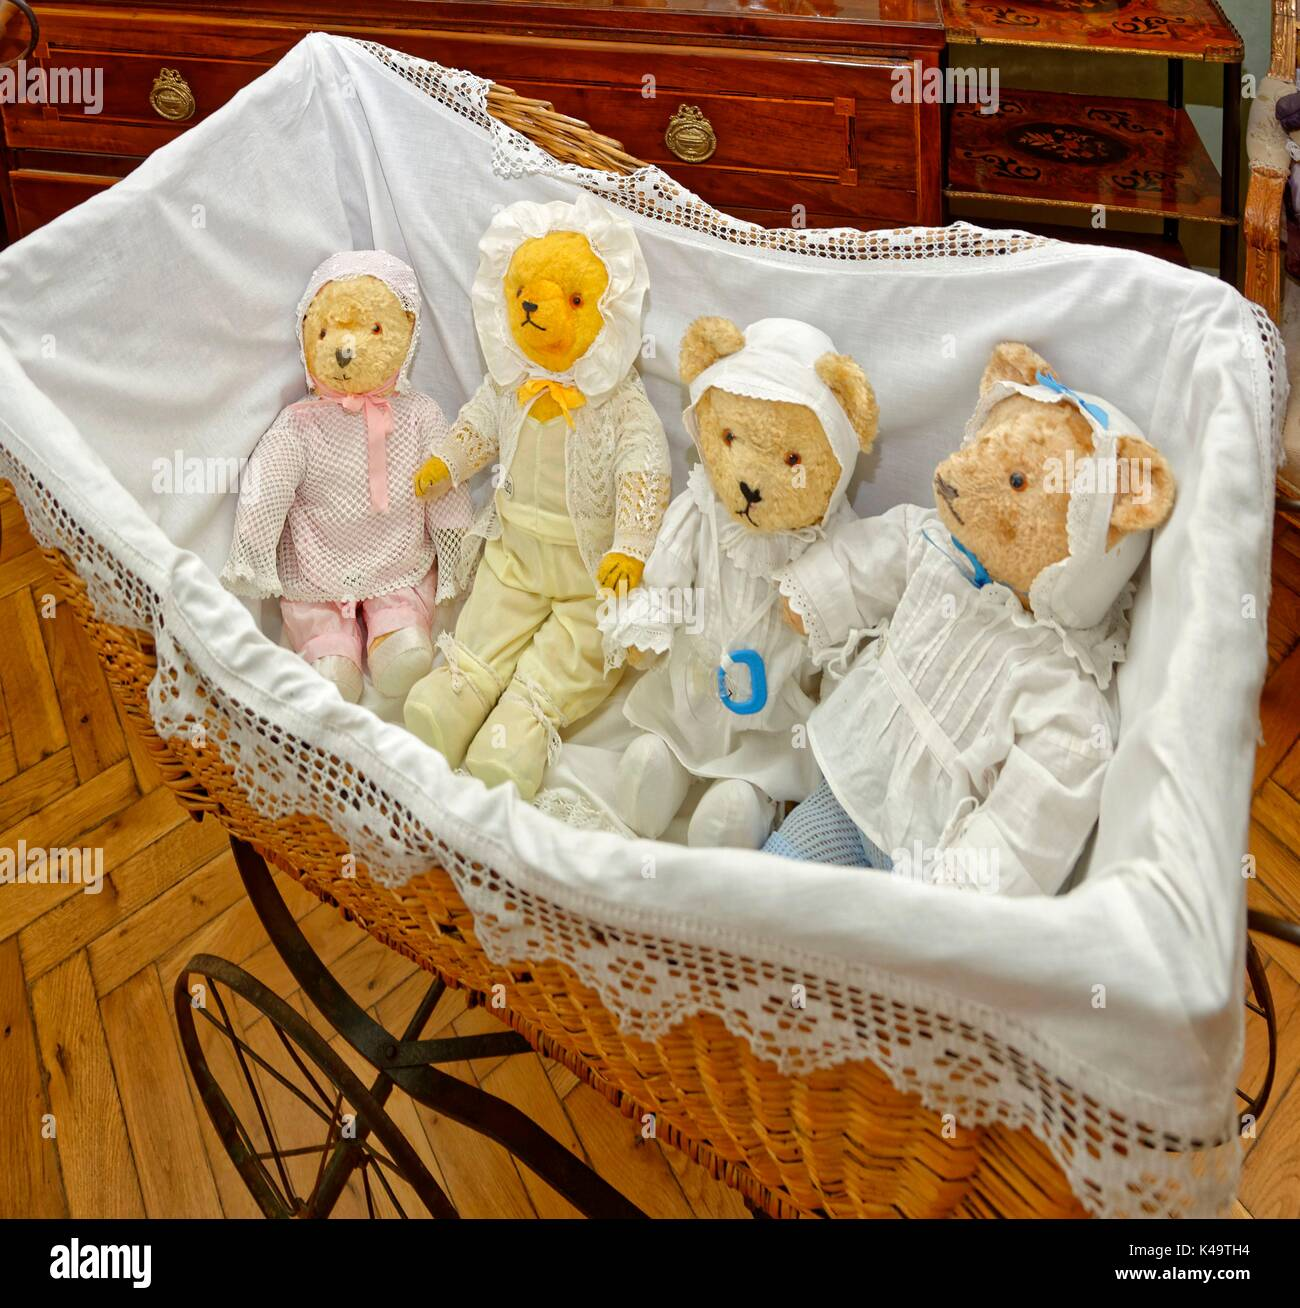 Four Teddy Bear Children In Basket Baby Carriage - Stock Image